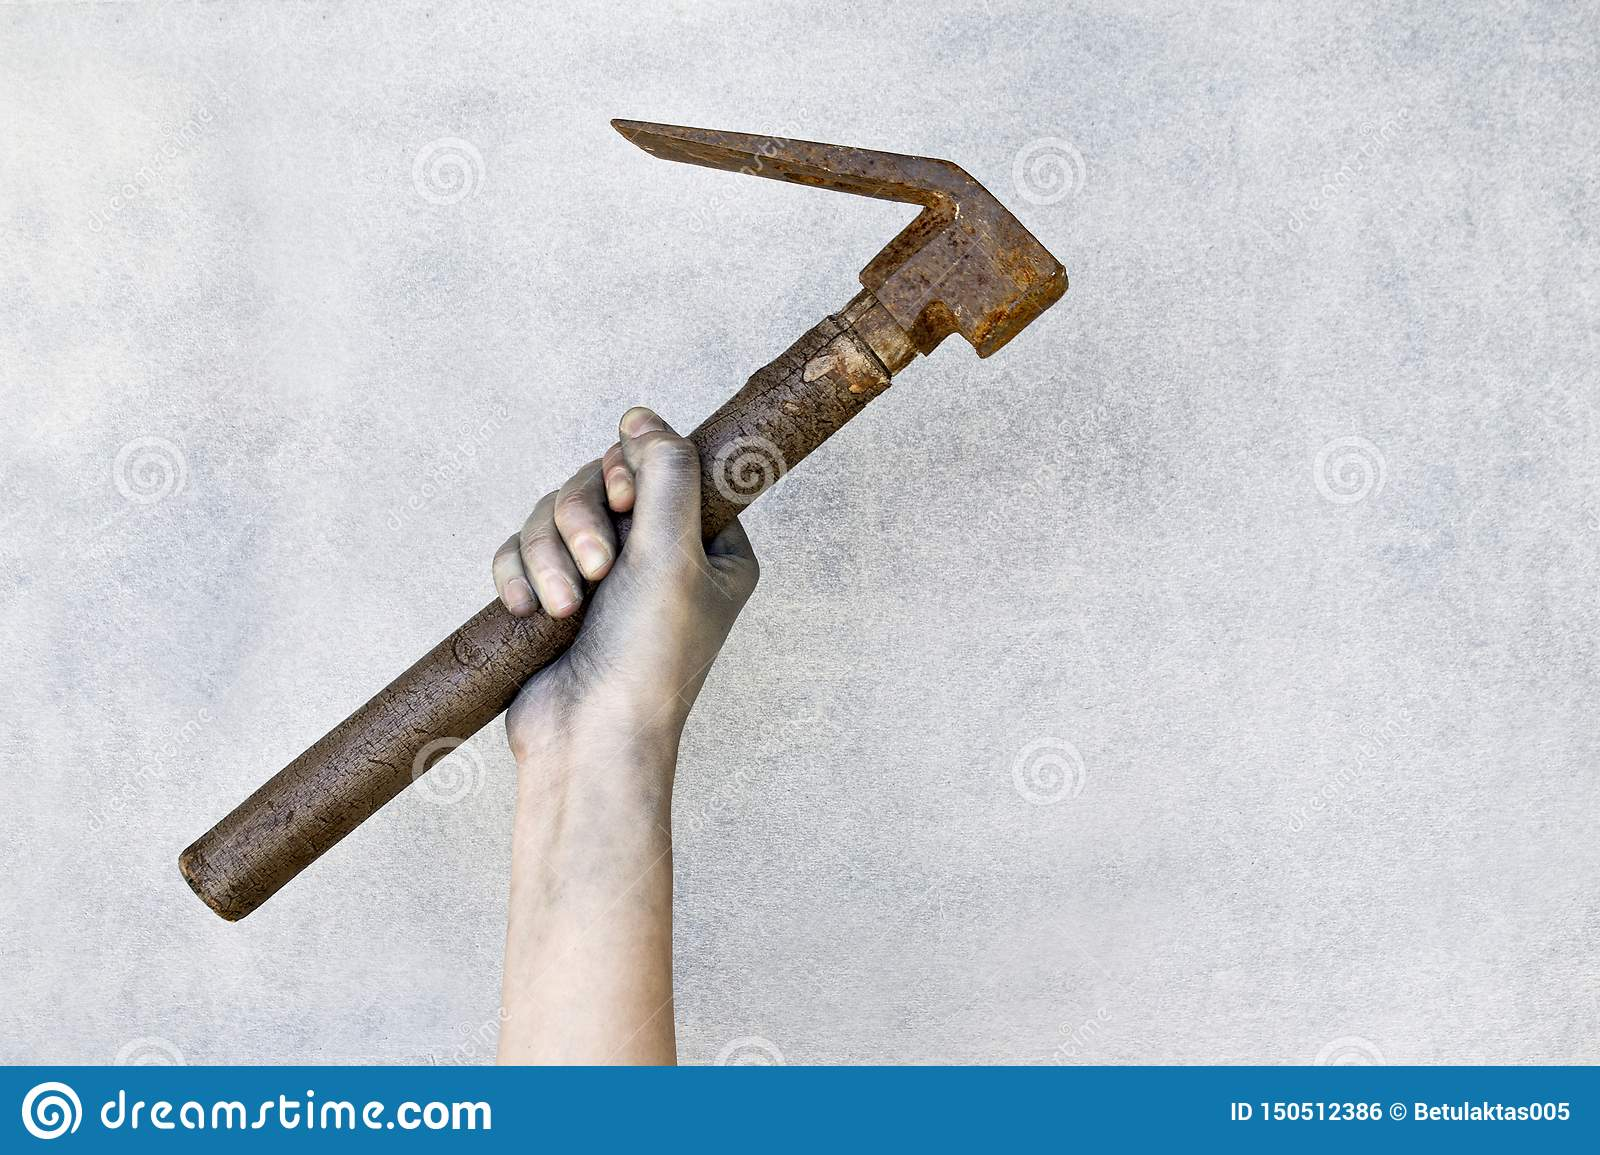 Hand holding old rusty hammer on gray background.